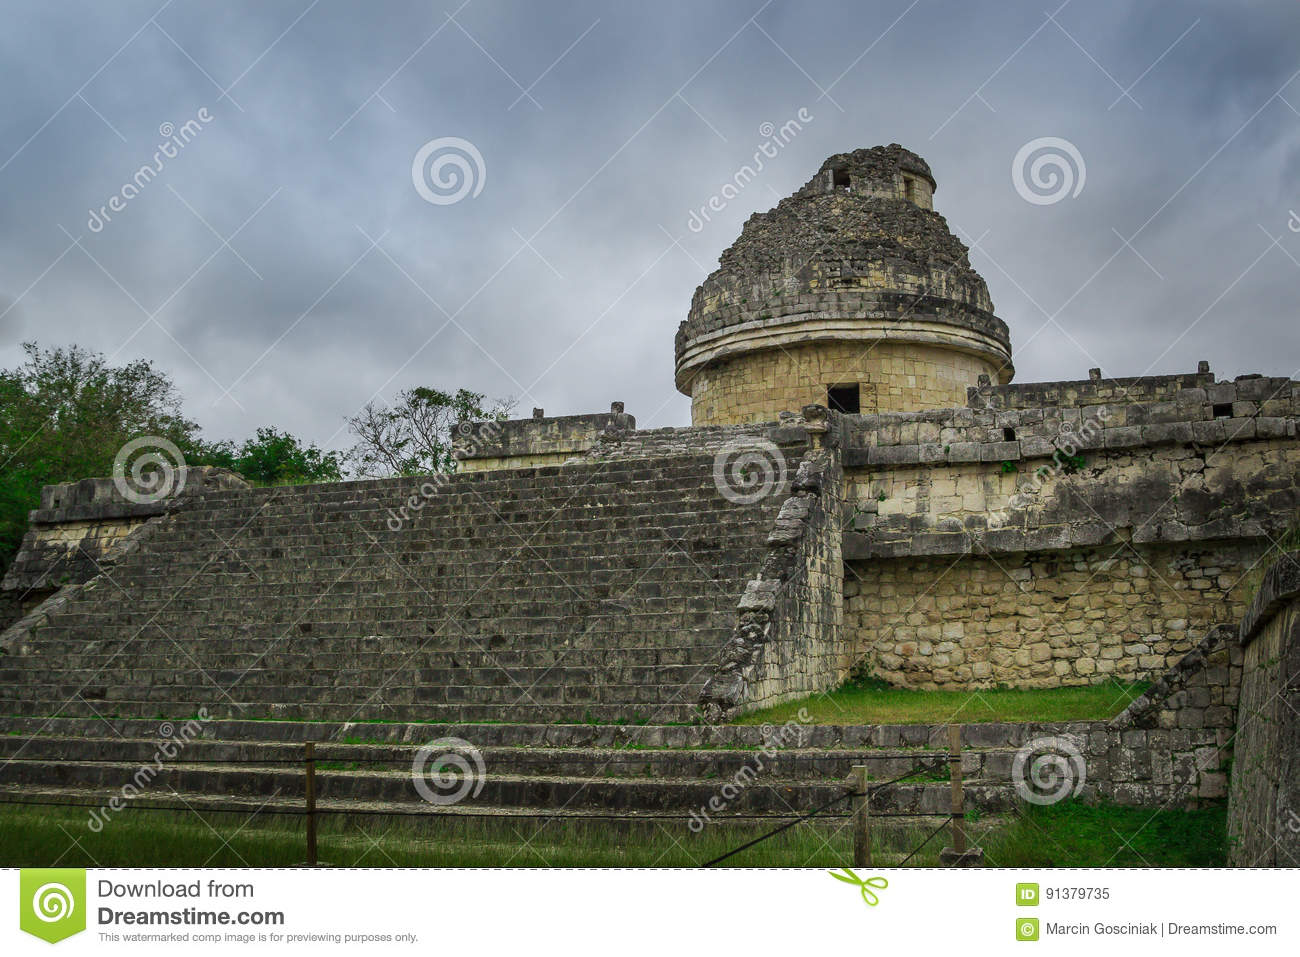 The `El Caracol` observatory temple in Chichen Itza complex